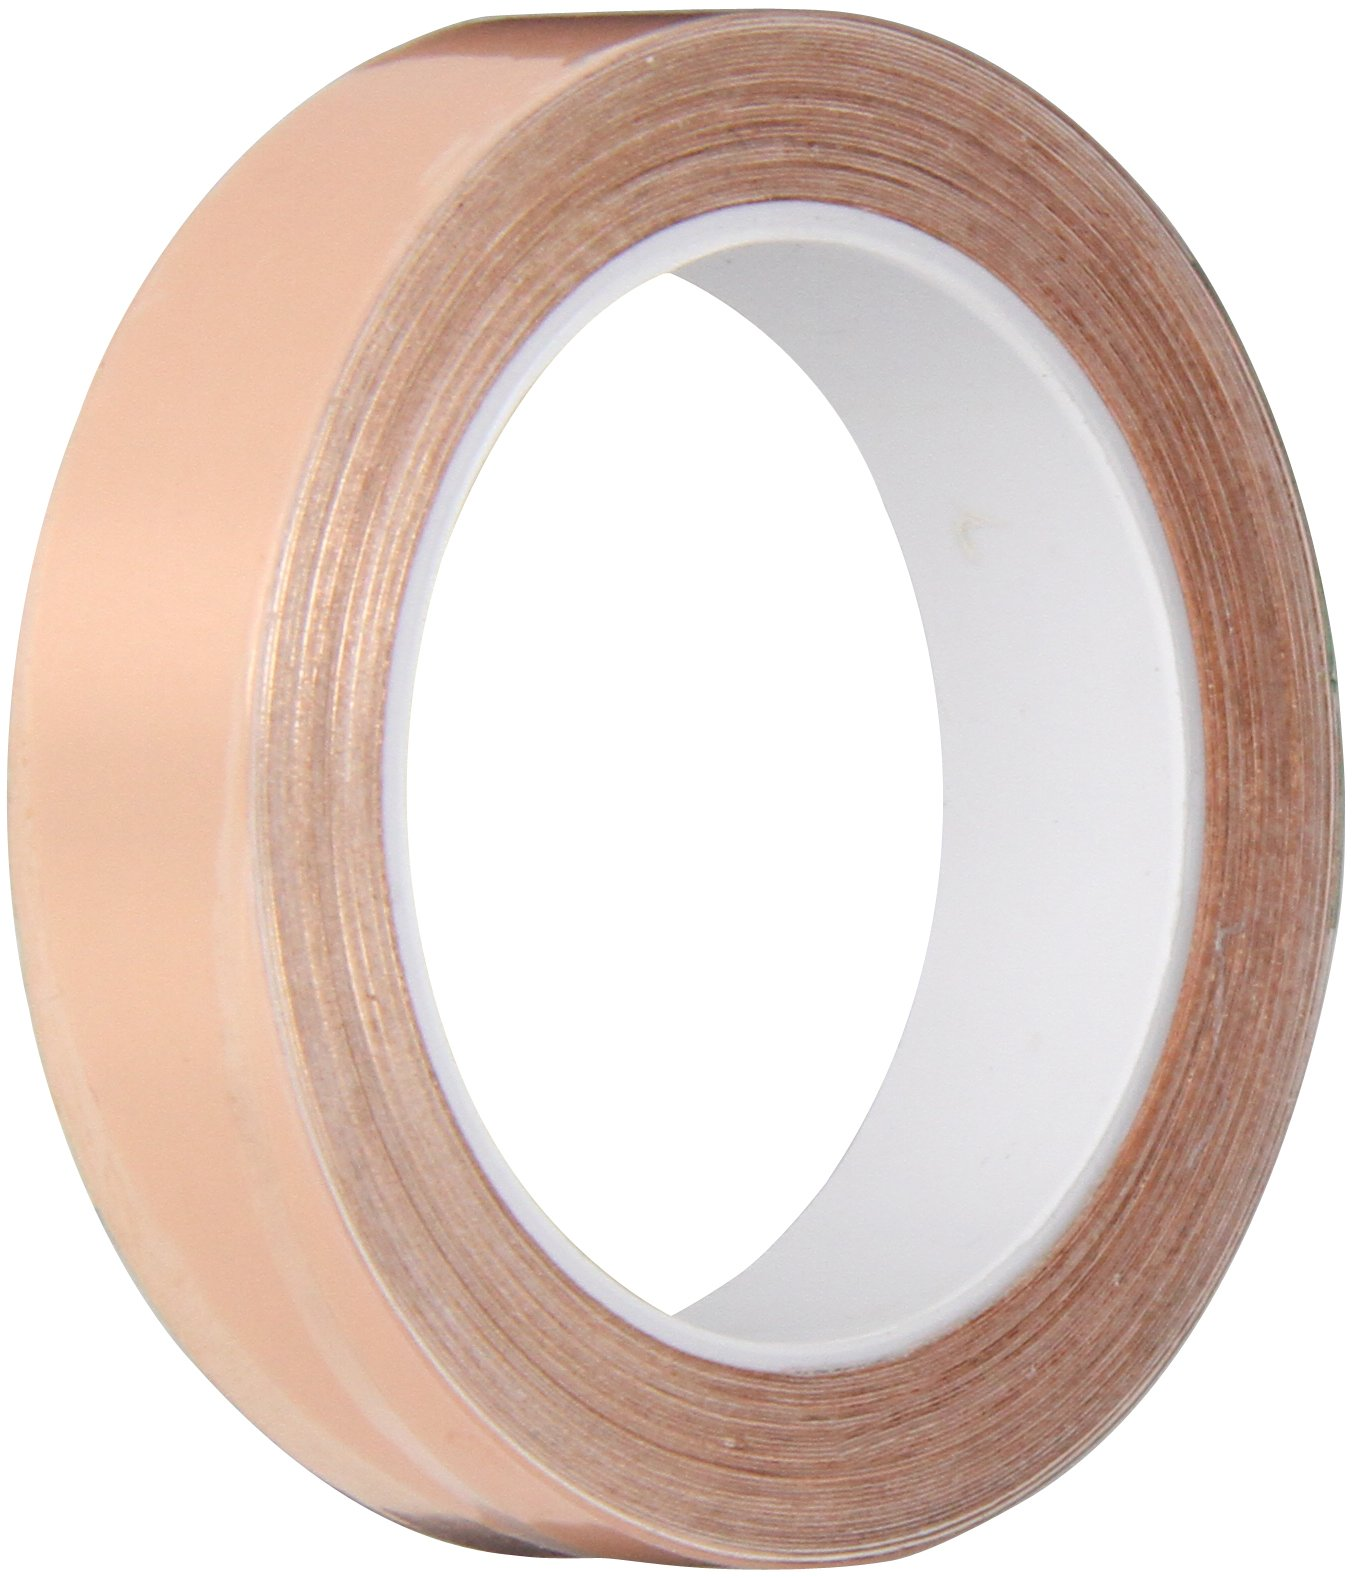 Cinta de Cobre 12mm x 5.5mt Adhesivo NO Conductor 3M